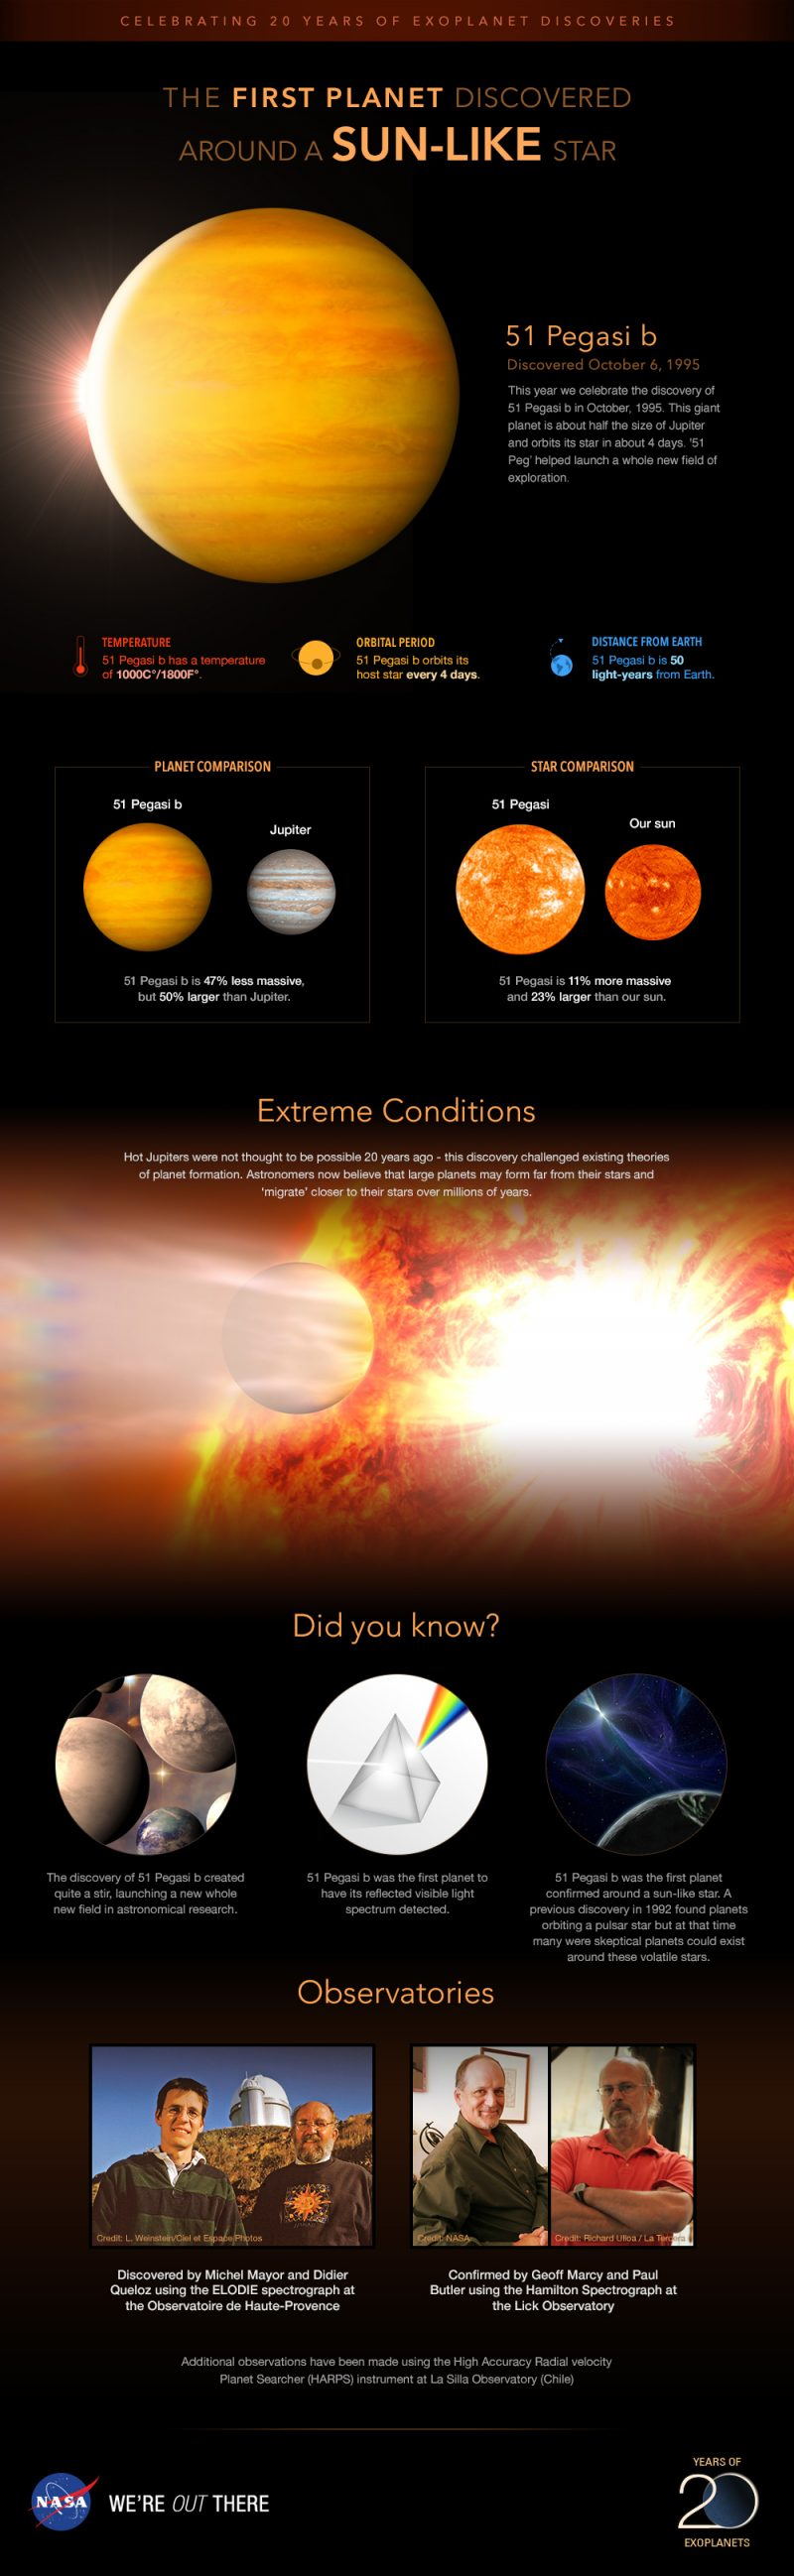 Infographic showing facts about 51 Pegasi b including its size relative to Jupiter and its sun's size.